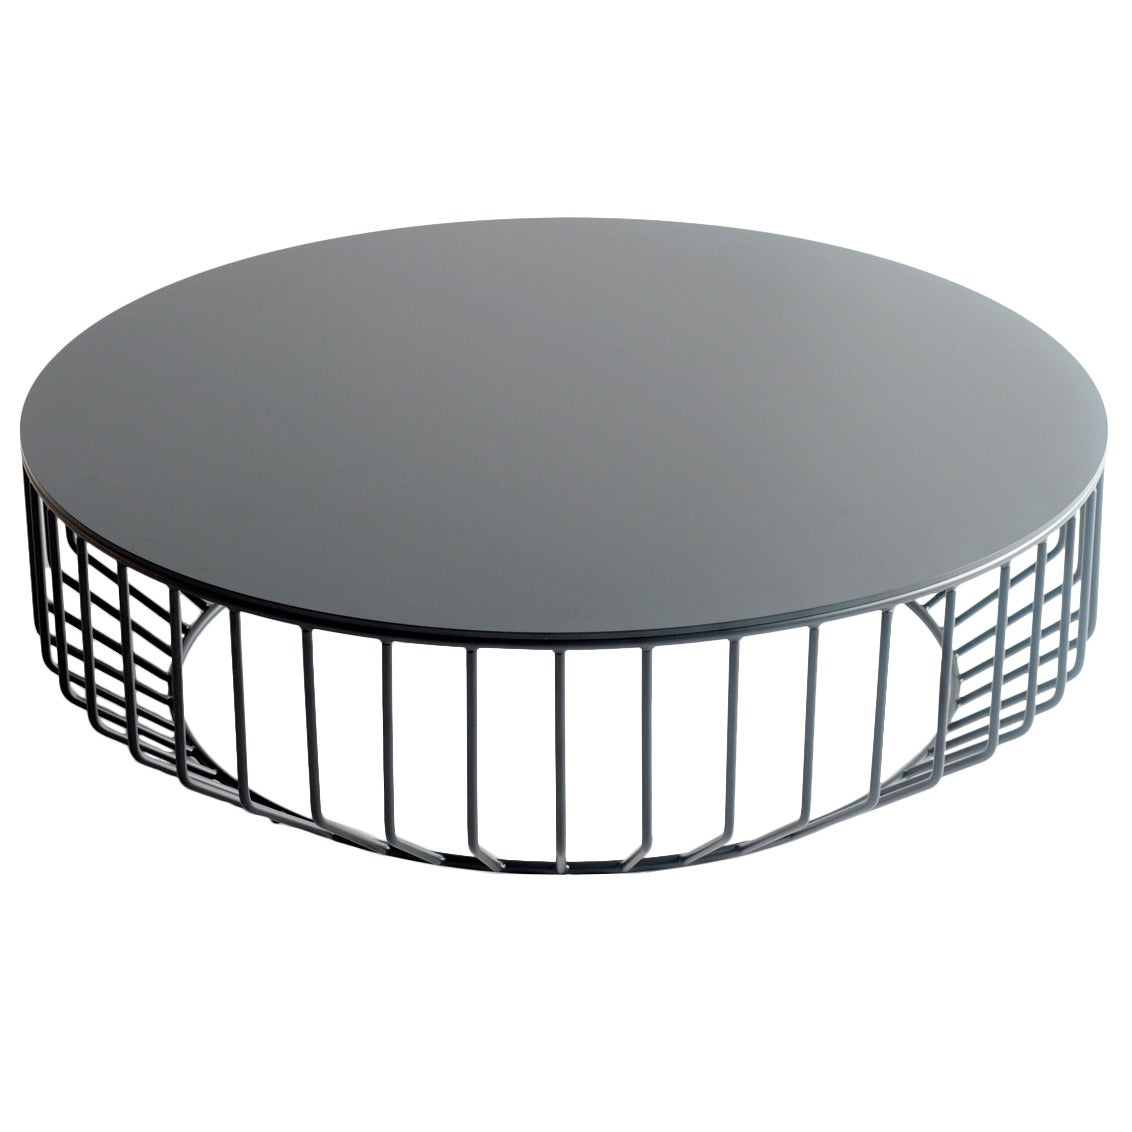 Charmant Wired Coffee Table (Steel Top) By Phase Design